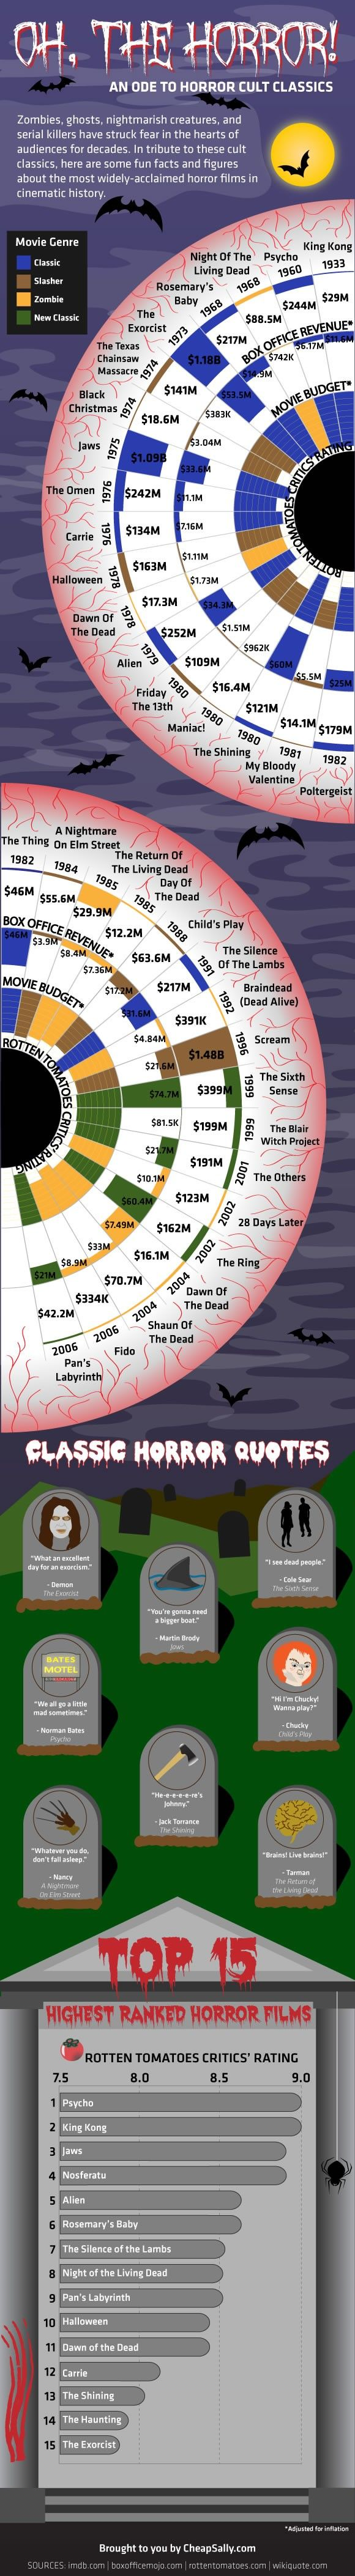 Top 30+ Most Ranked Horror & Scary Films from 1982 till today #infographic #movies #entertainment